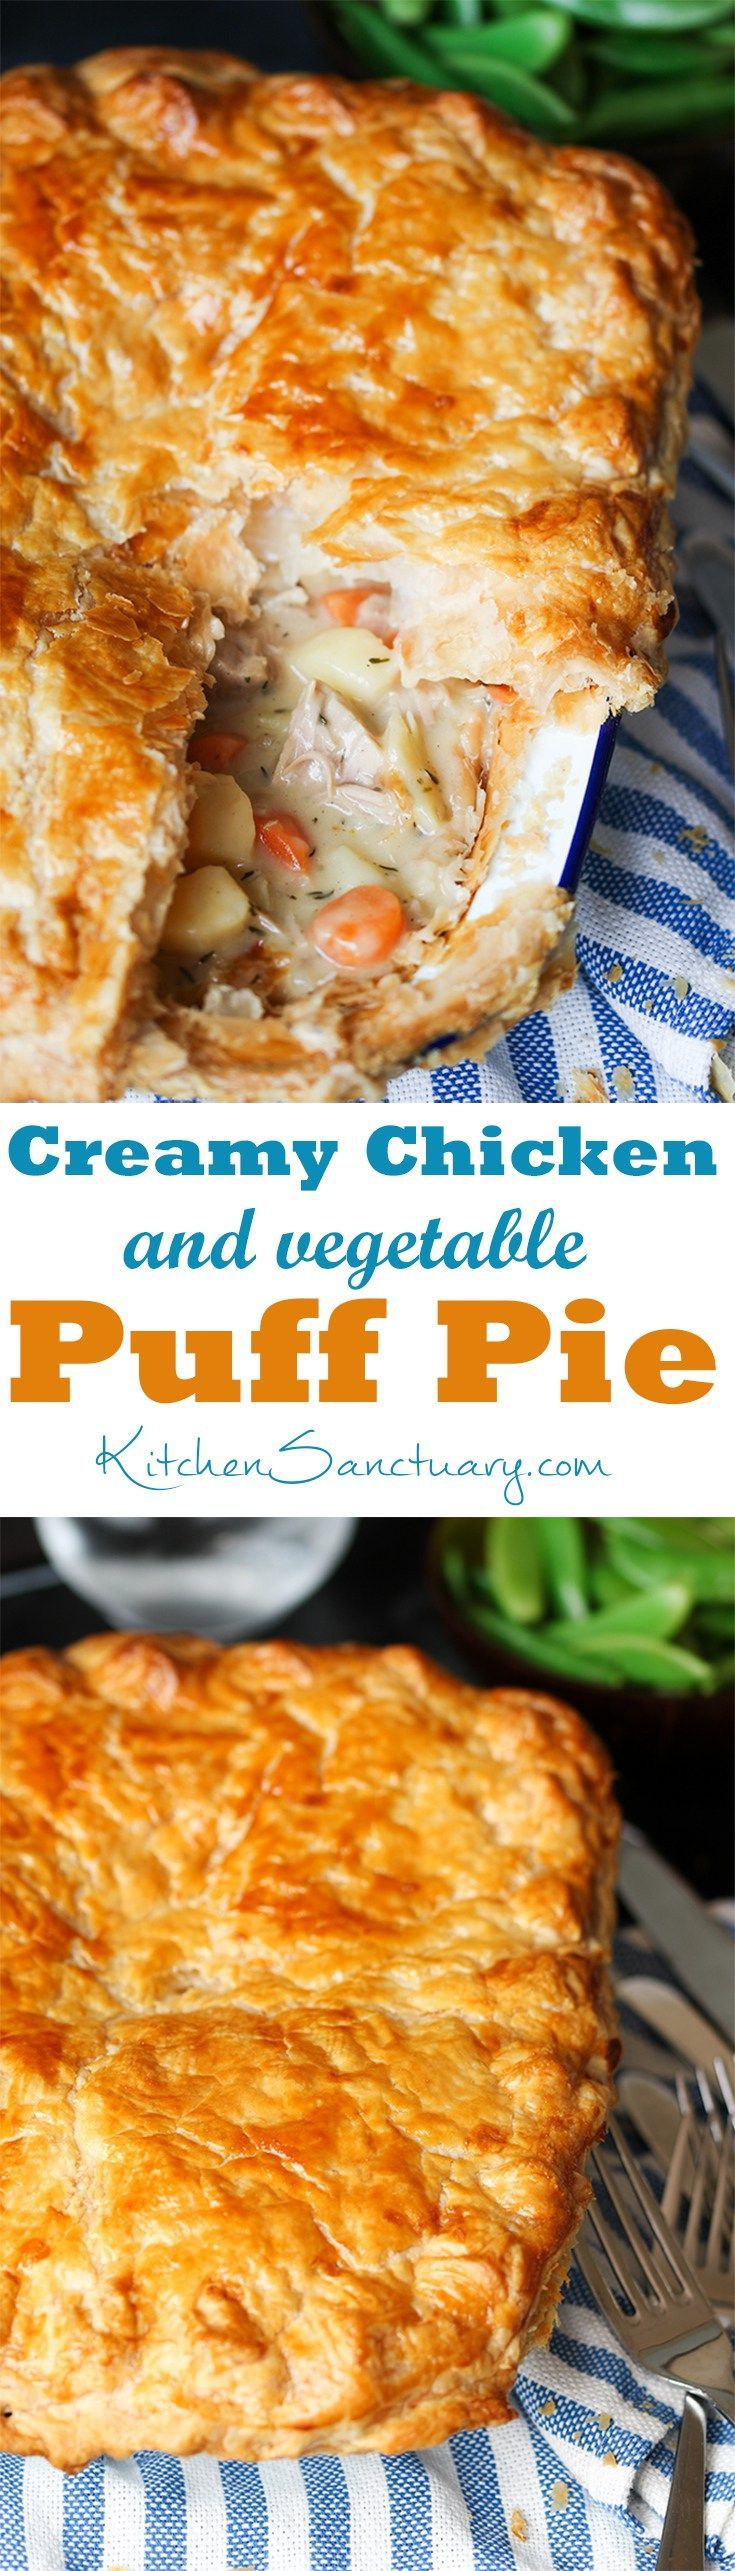 Creamy Chicken and Vegetable puff pie - comfort food bliss!                                                                                                                                                     More